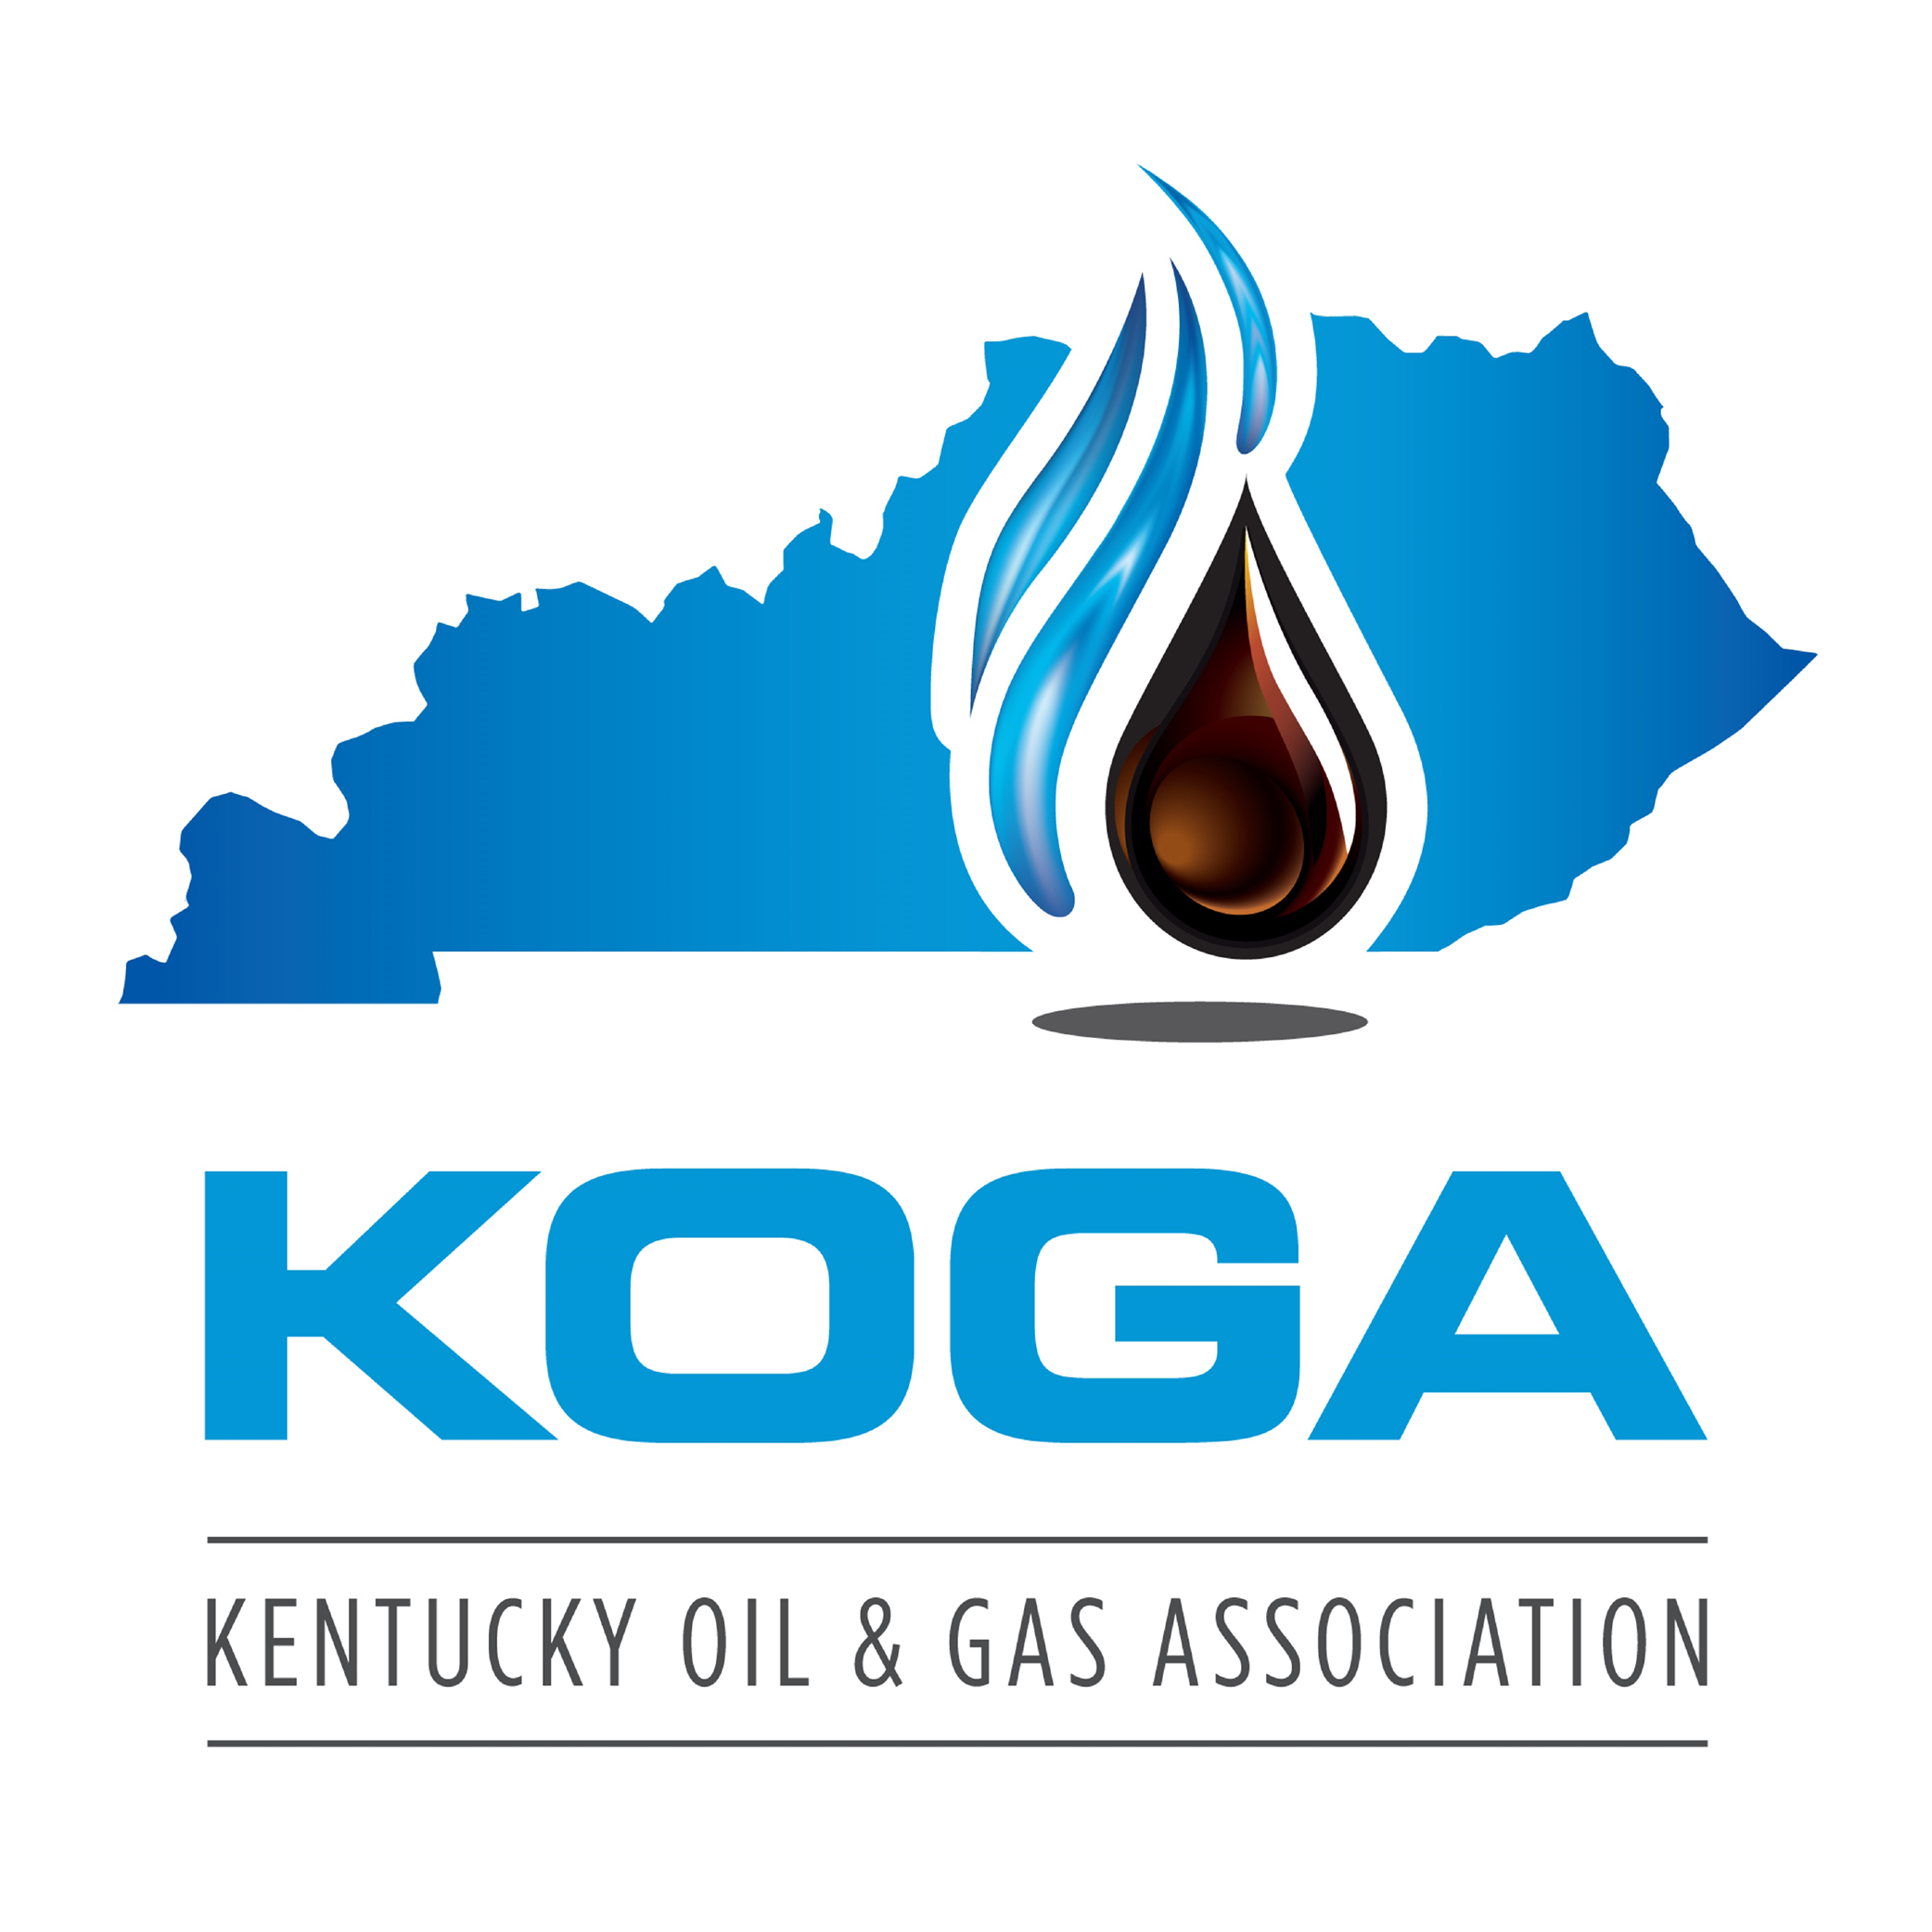 Kentucky Oil & Gas Association